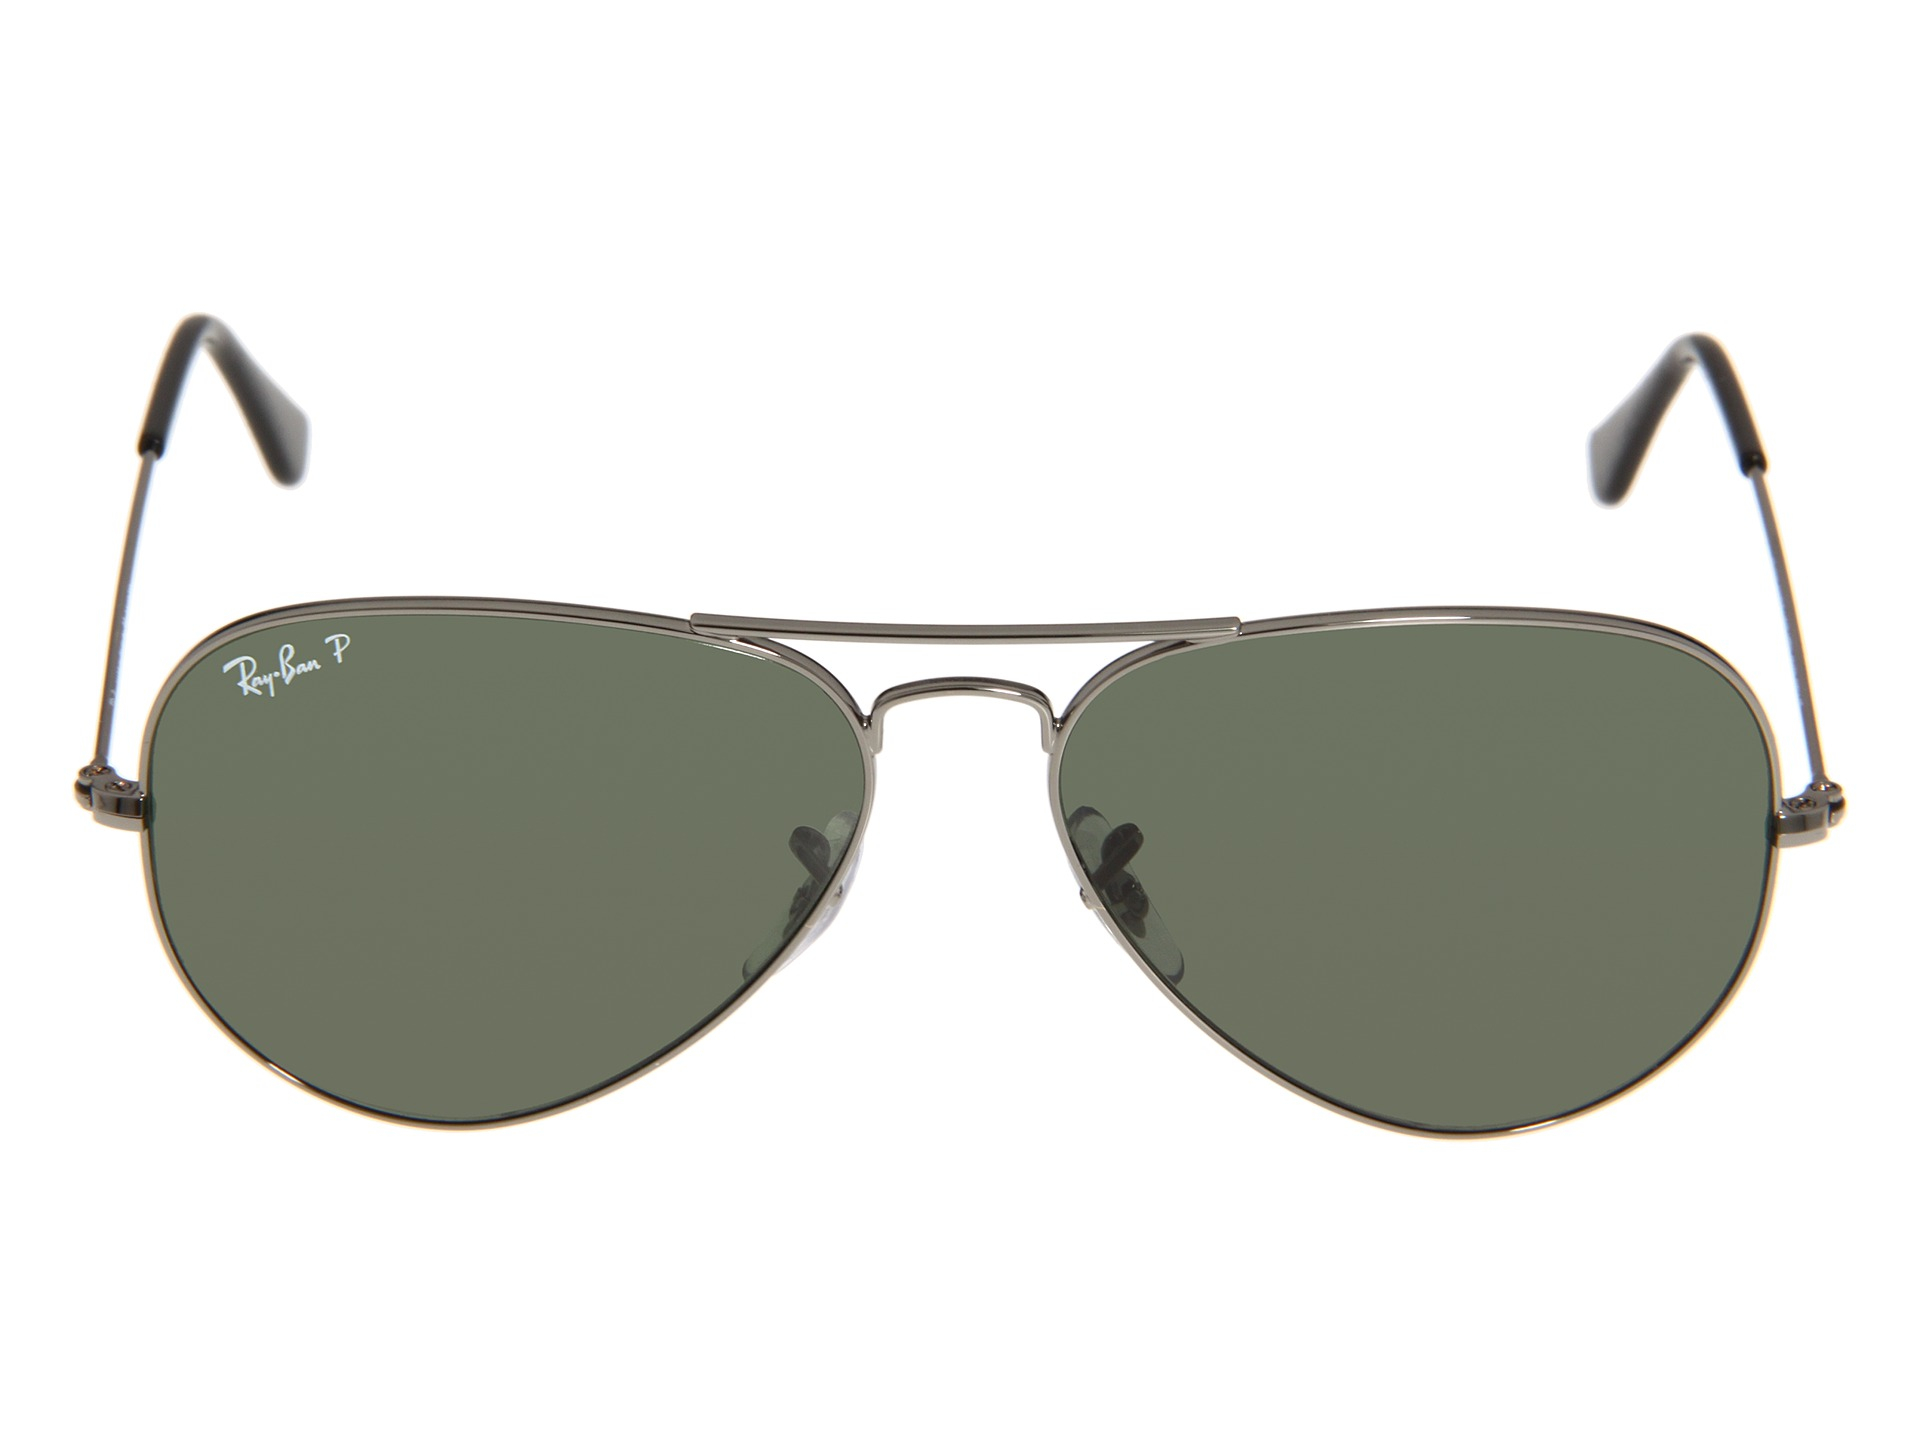 silver ray ban aviators rb 3025 58 polarized. Black Bedroom Furniture Sets. Home Design Ideas